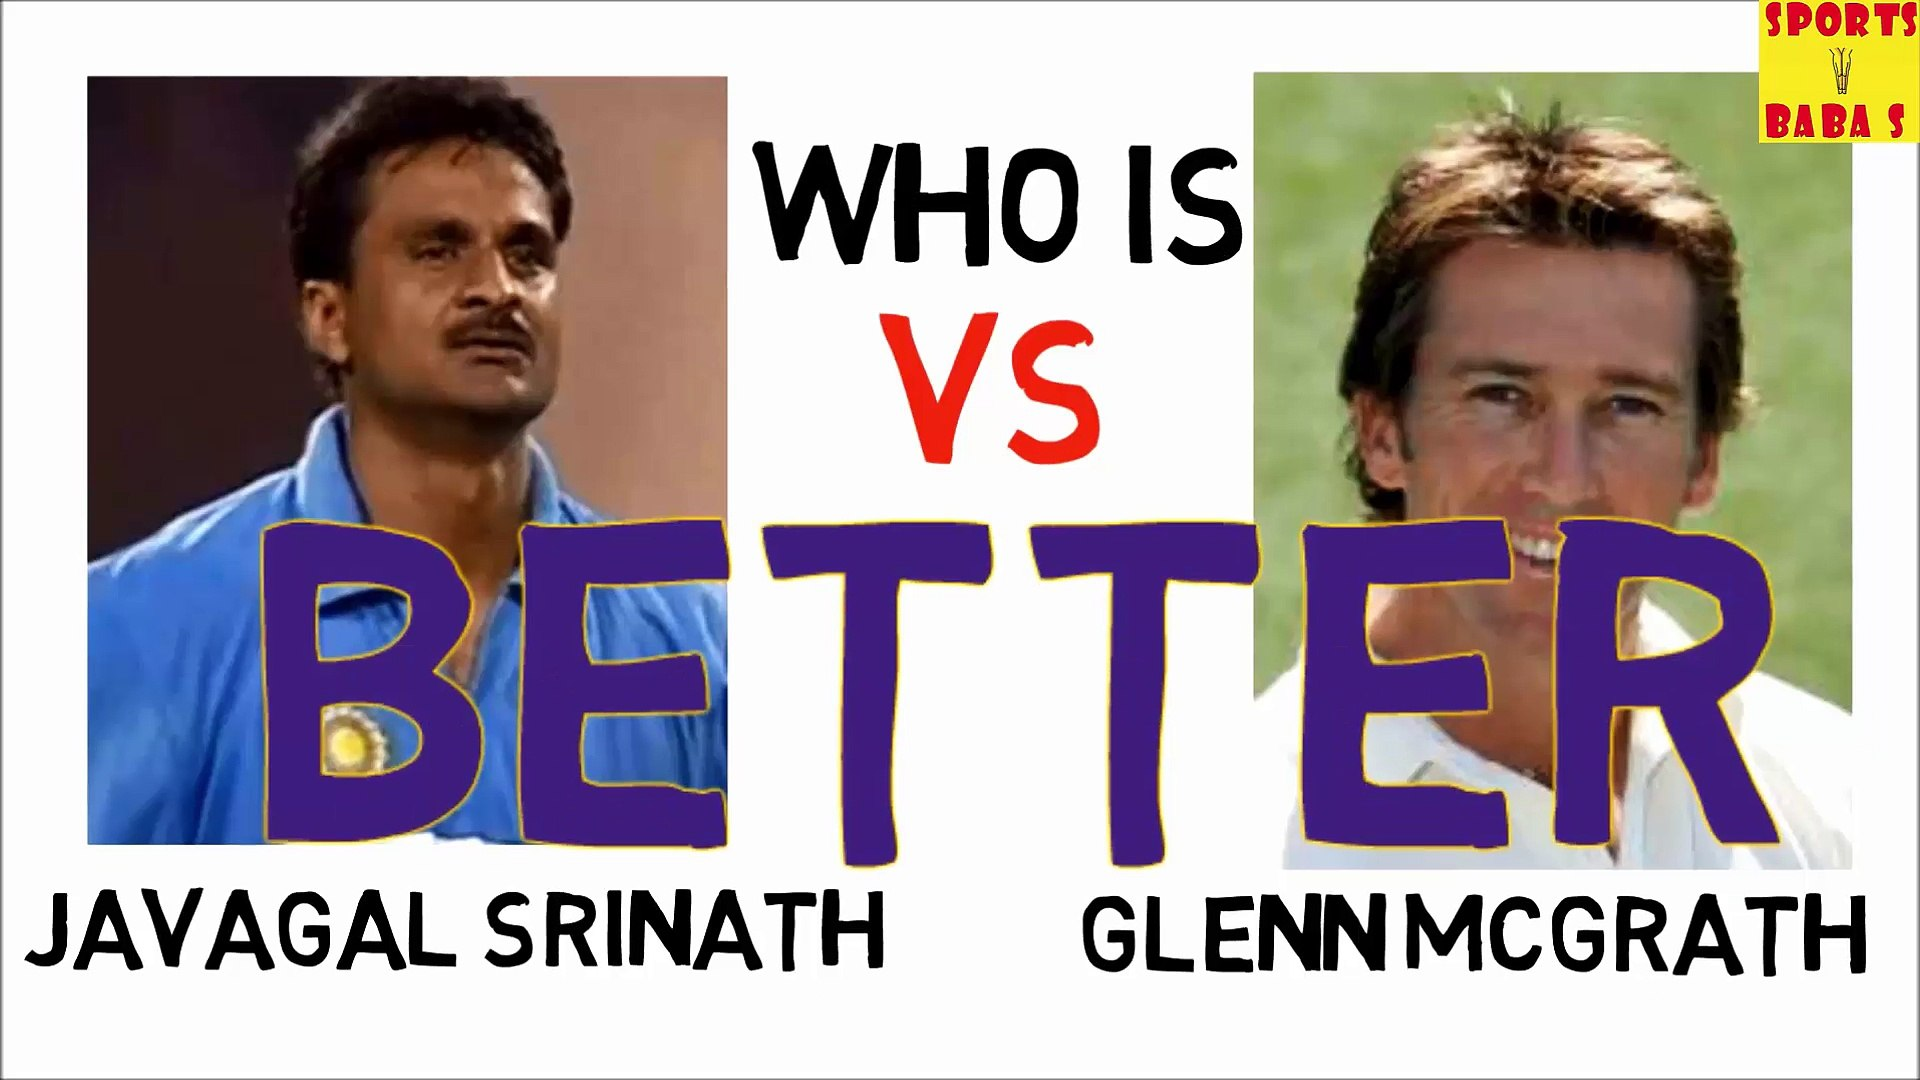 Who is Better? Javgal Srinath Vs Glenn Mcgrath Cricket Videos Knowledge Test Sports || BaBa S Series